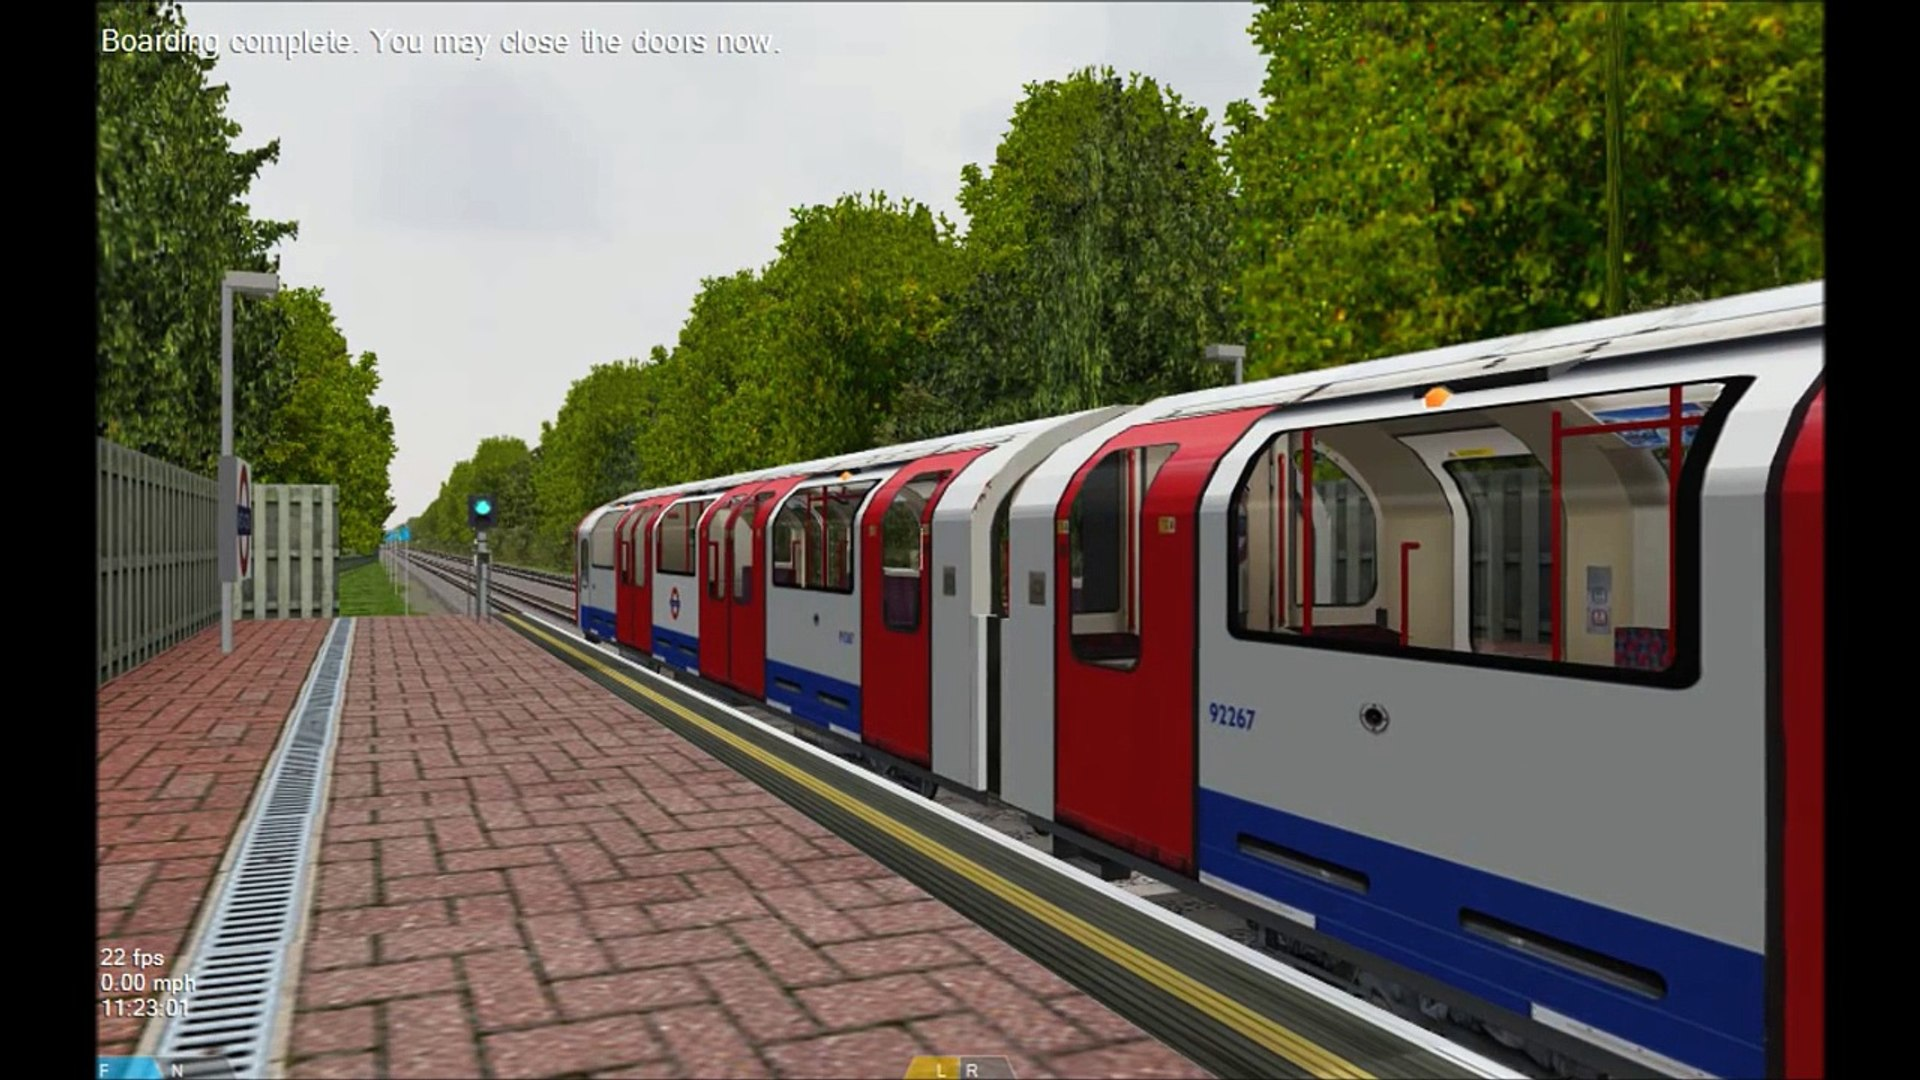 OpenBVE HD: London Underground Central Line Preview 1992TS ATO Mode Rail  Fanning